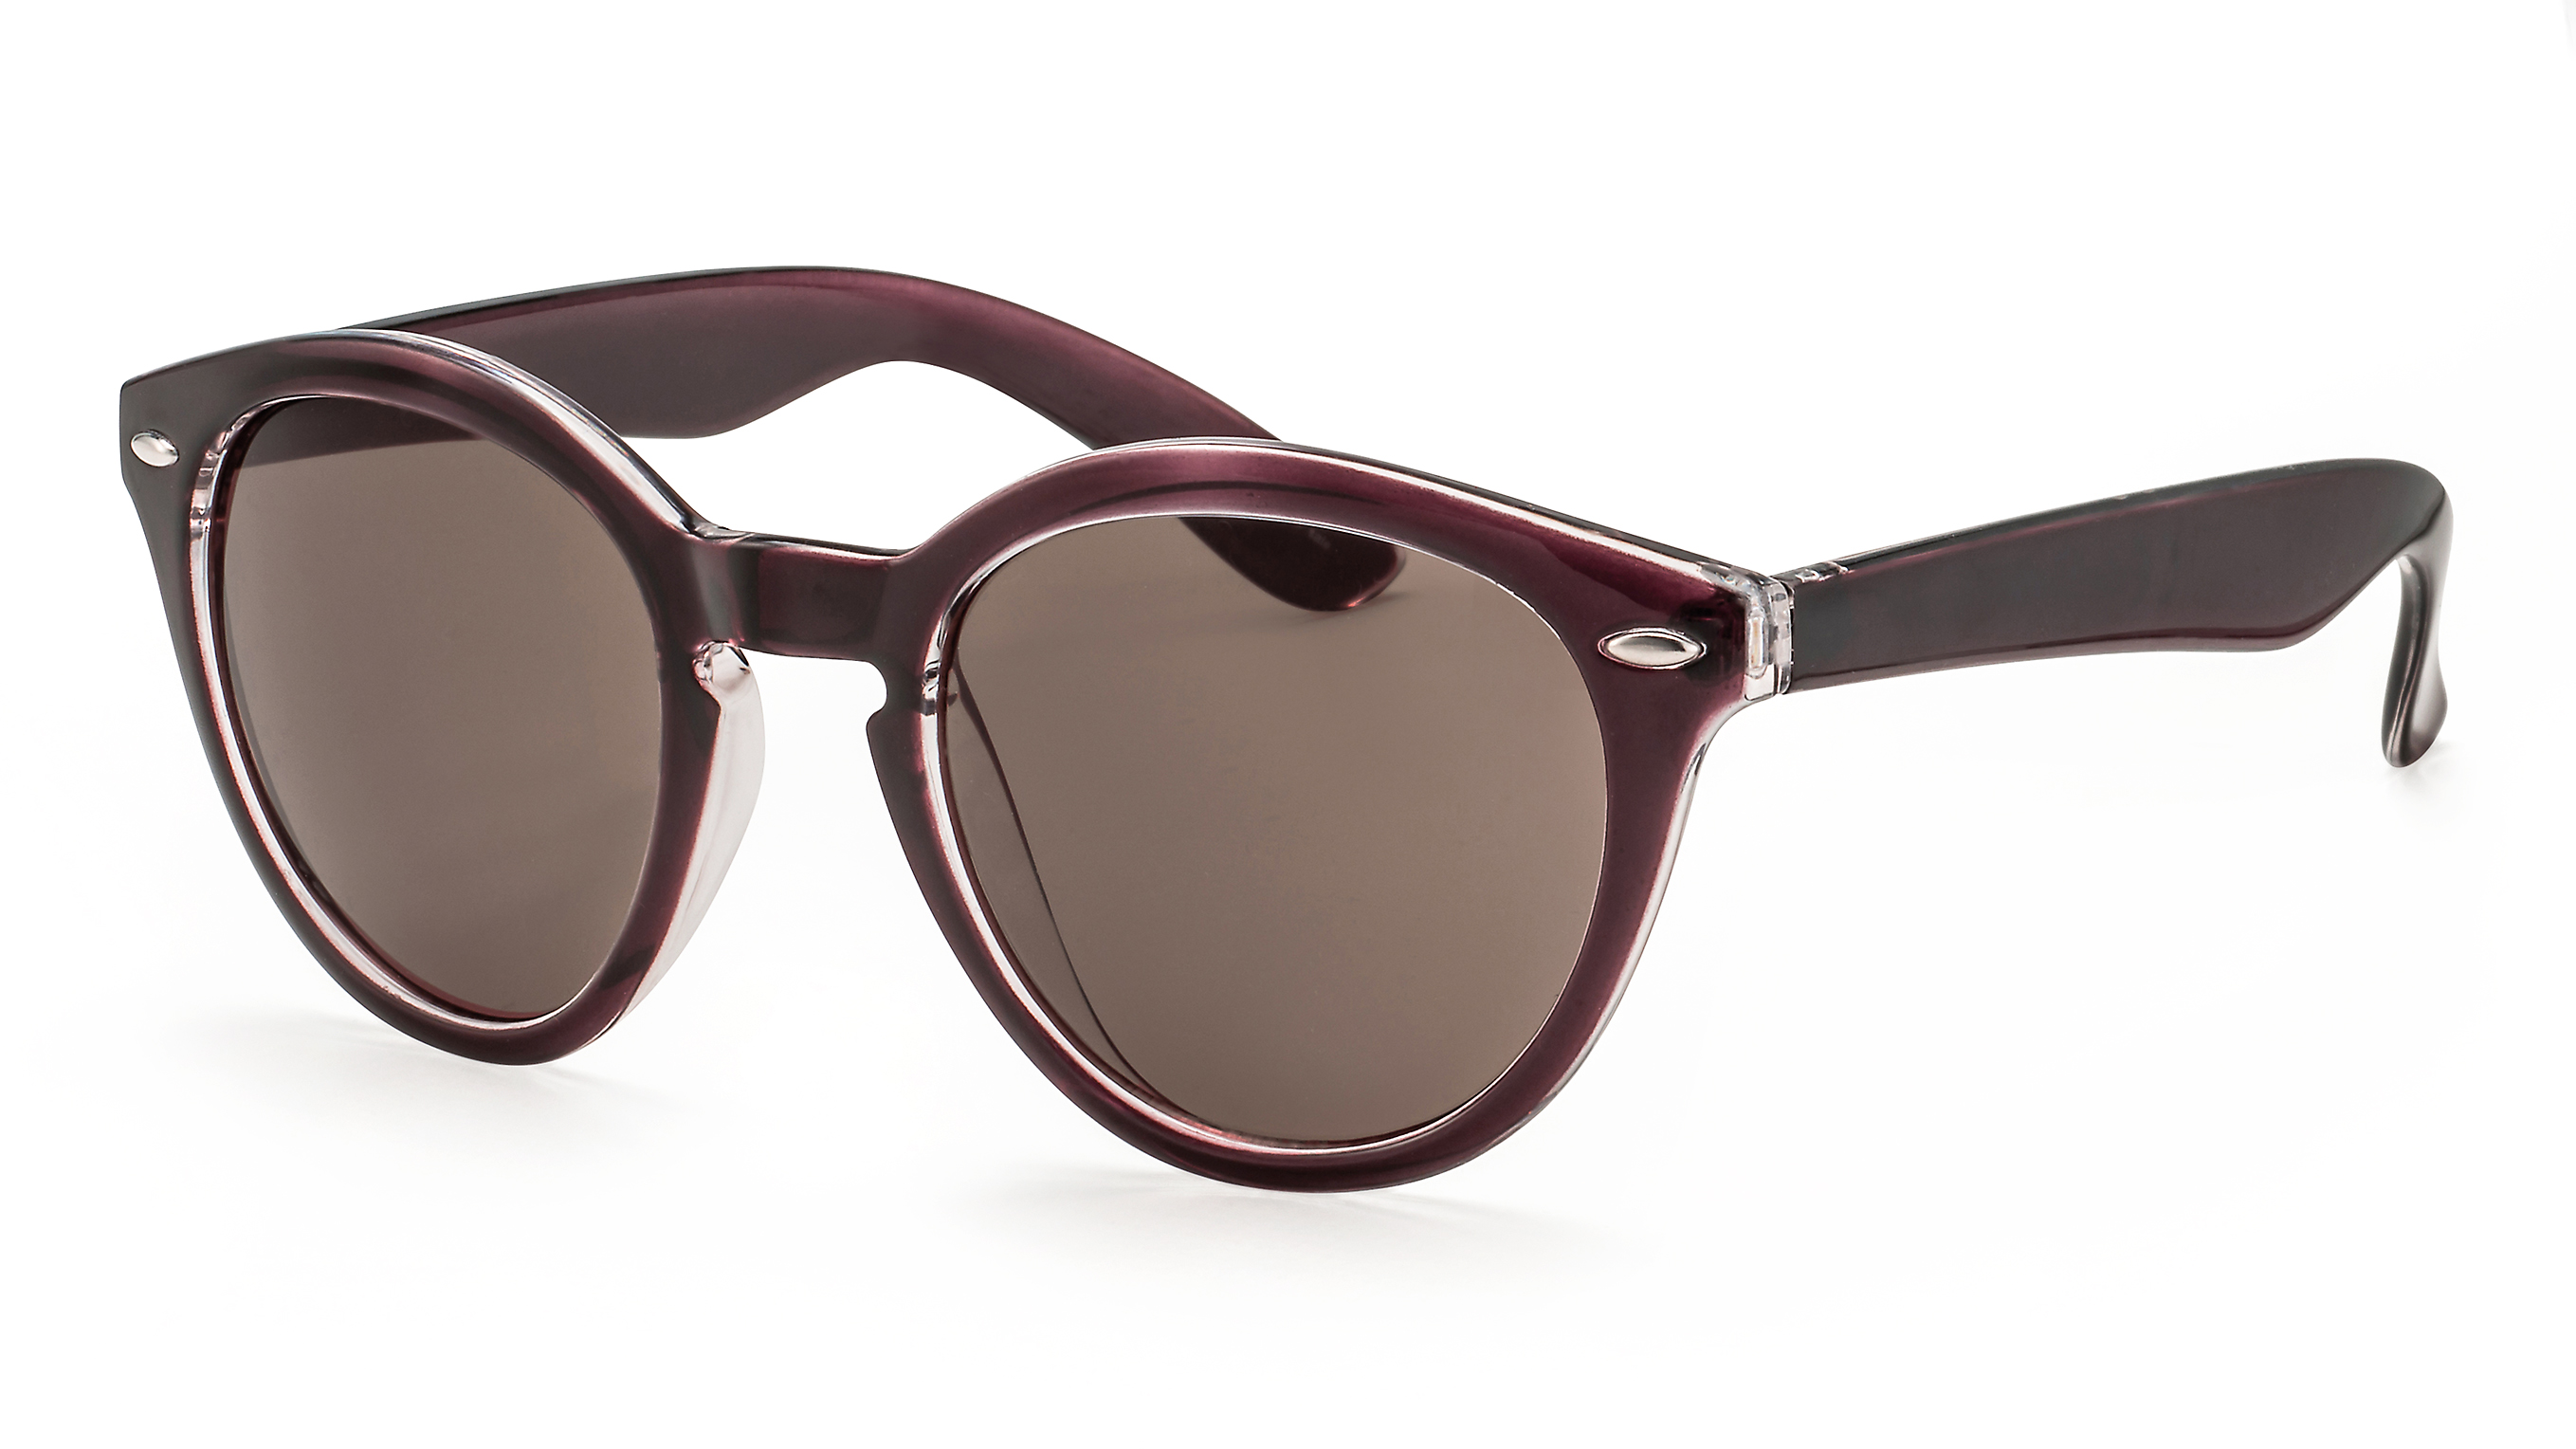 Main view sunglasses 3024408